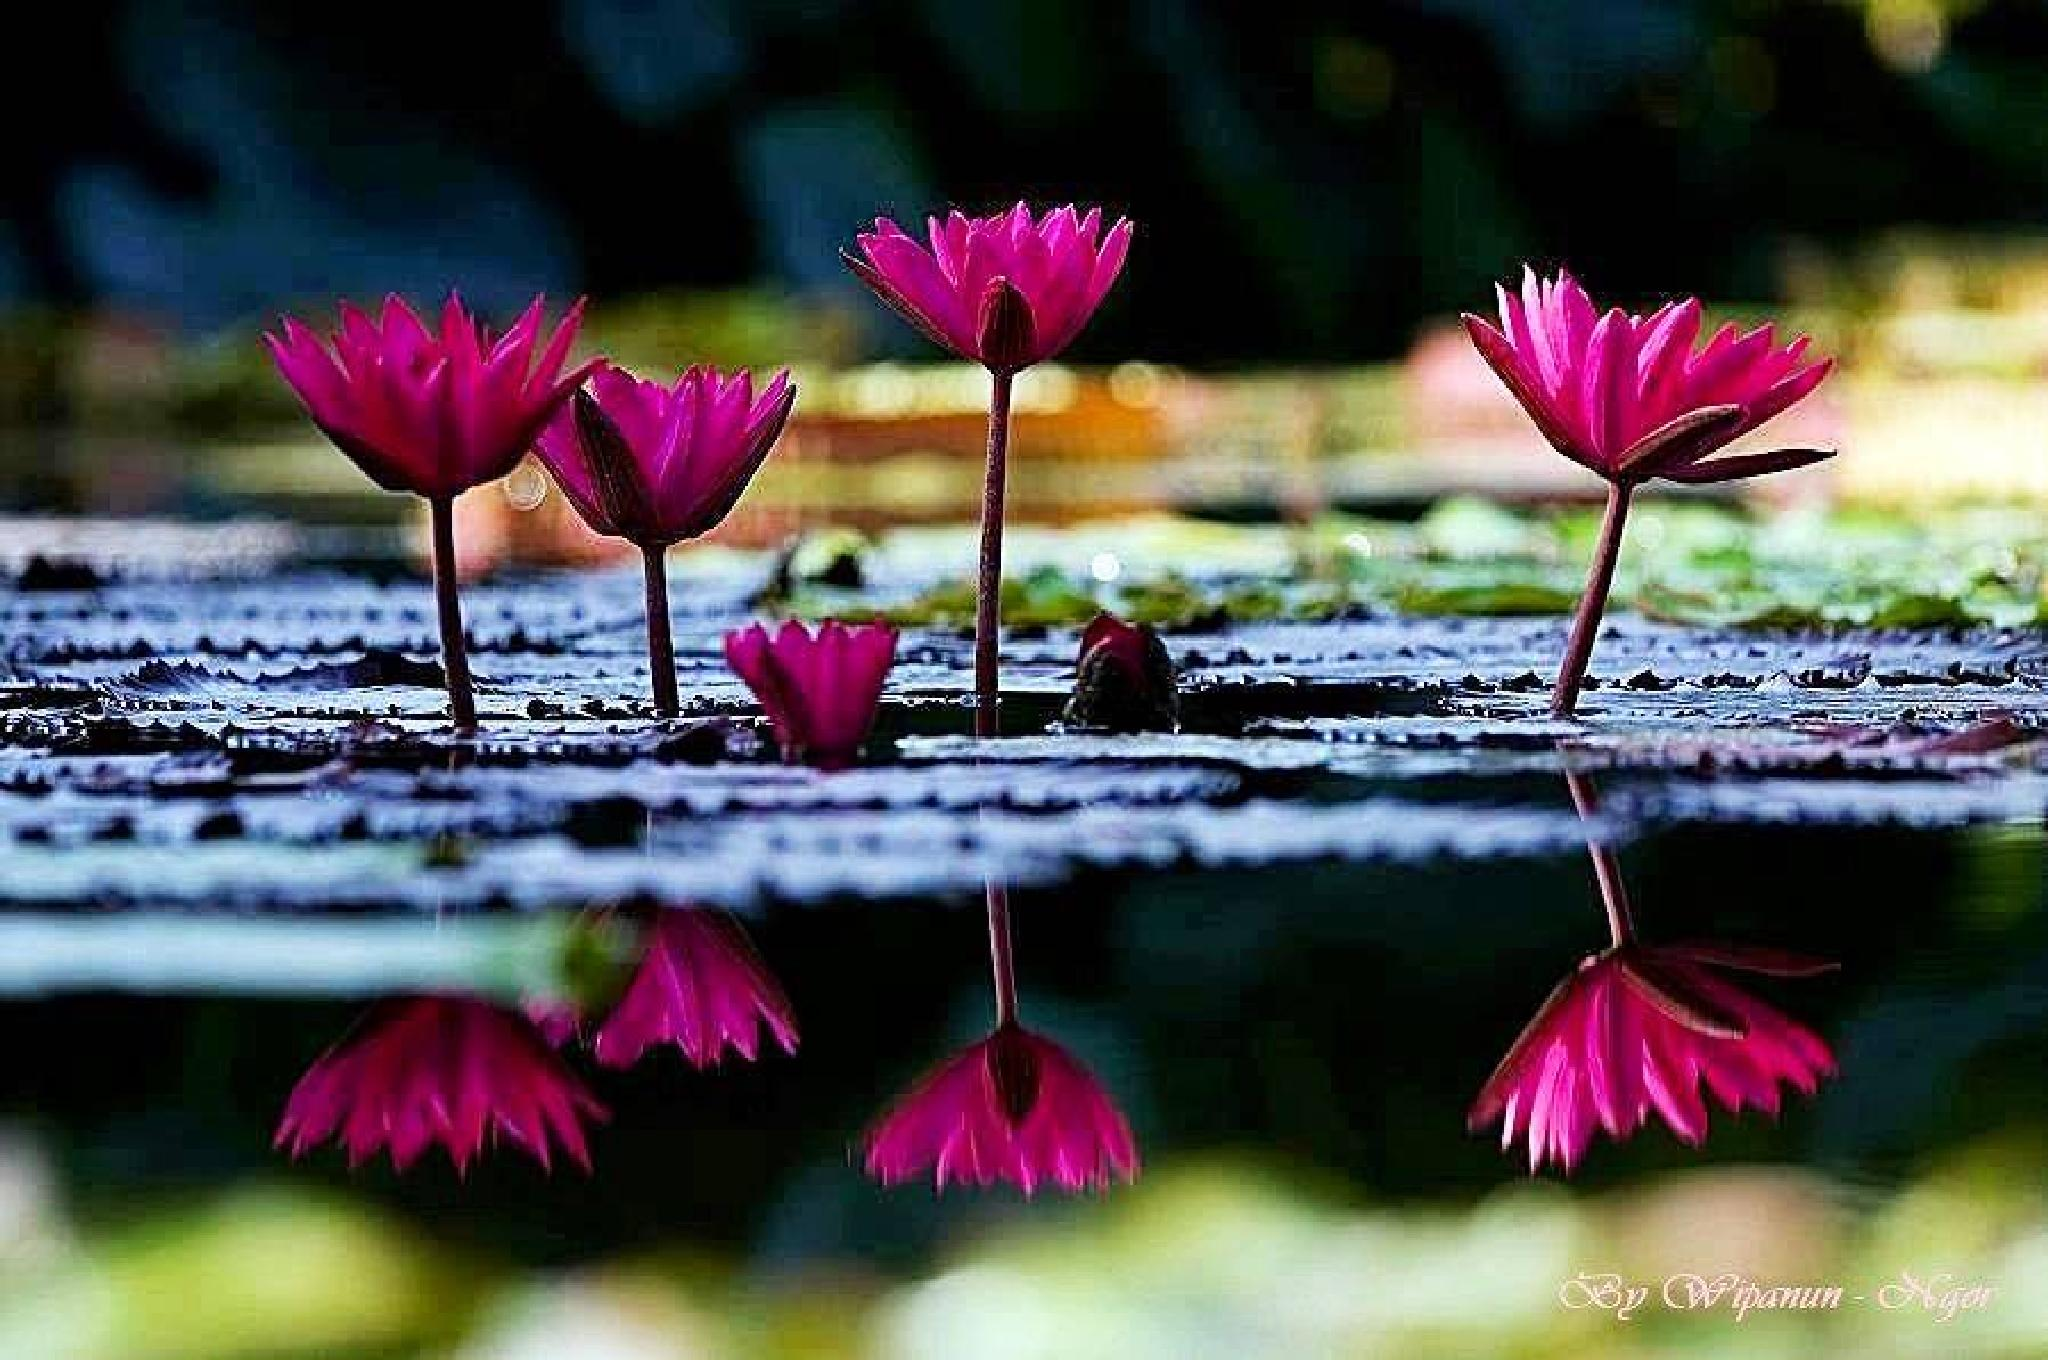 Water Lilly 3 by Wipanun Thepnual Sole